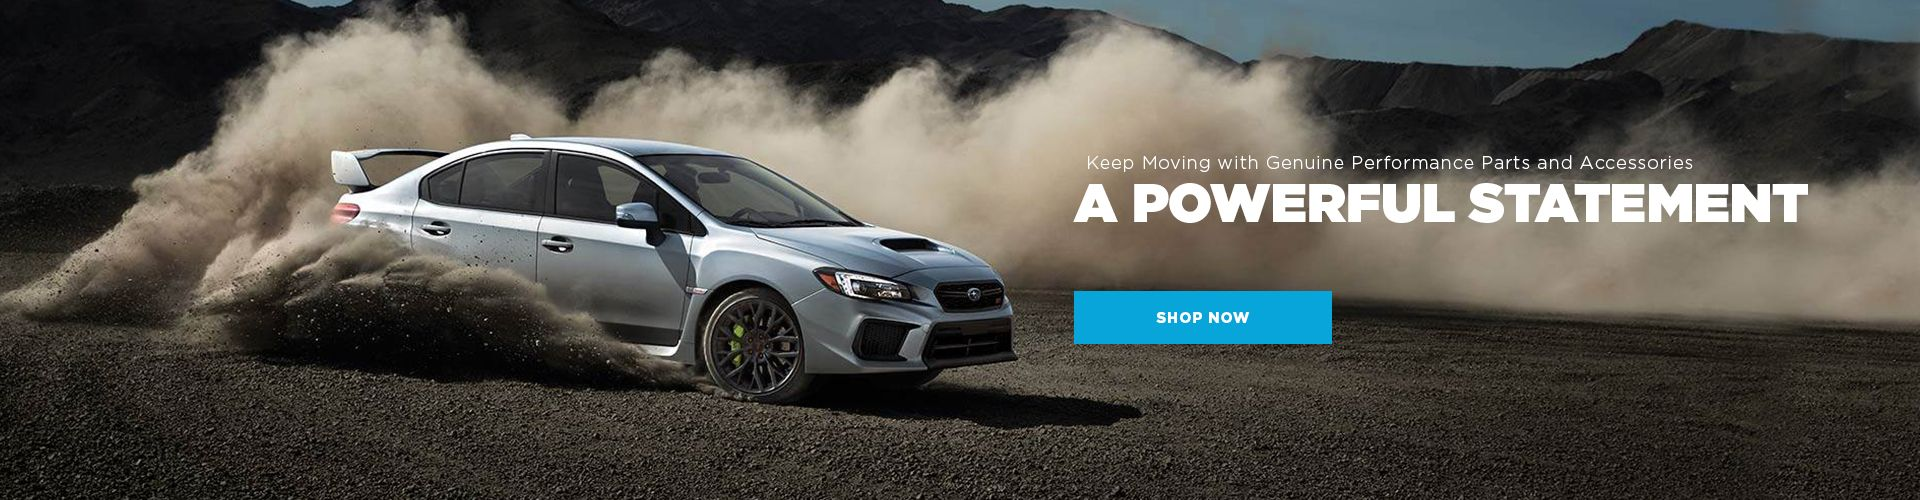 Genuine Subaru Parts and Accessories | 1stSubaruParts